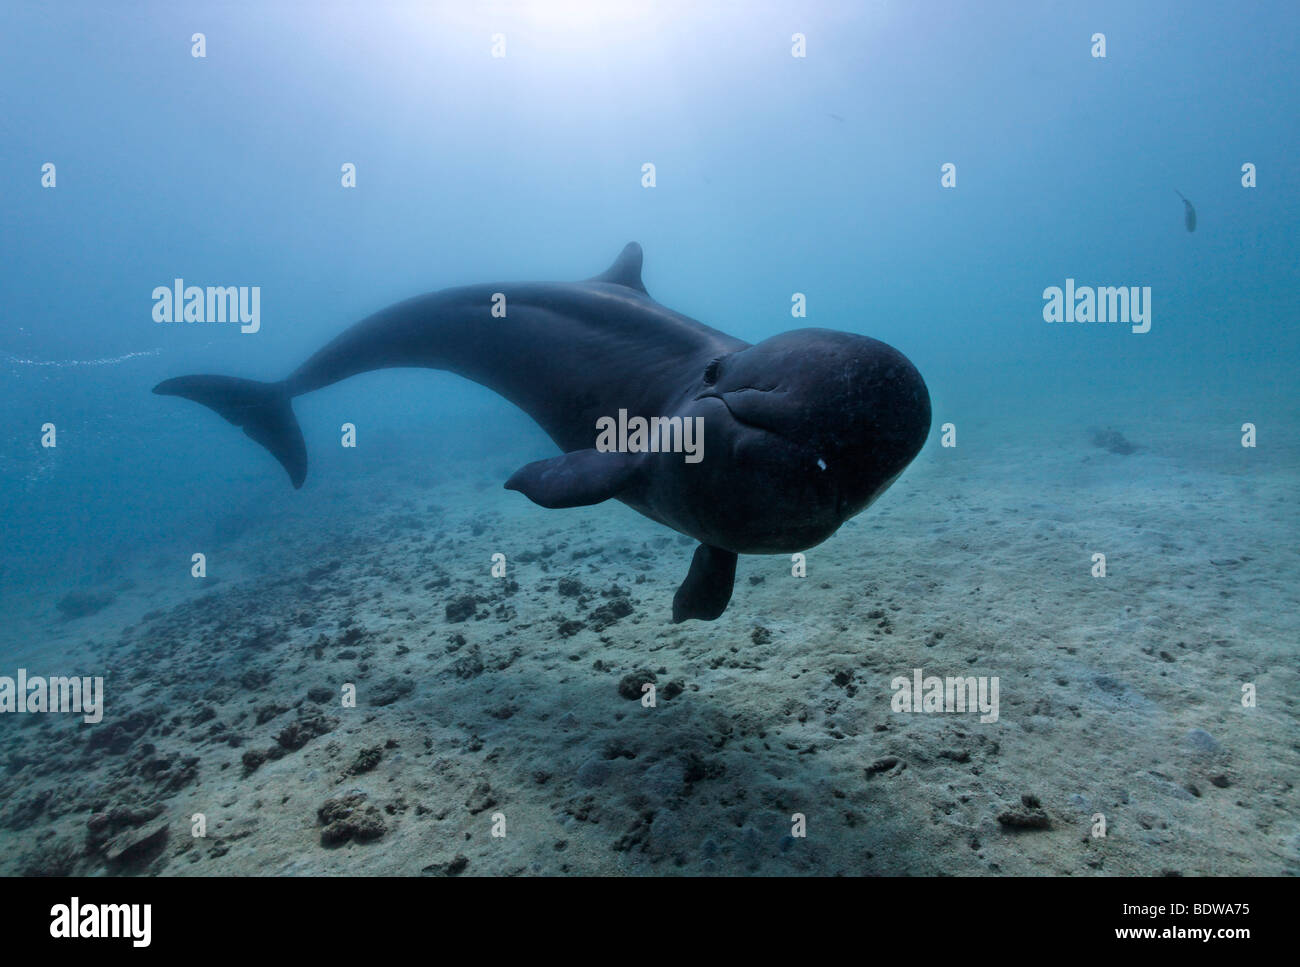 False Killer Whale (Pseudorca crassidens), swimming above sandy sea bed, Subic Bay, Luzon, Philippines, South China - Stock Image